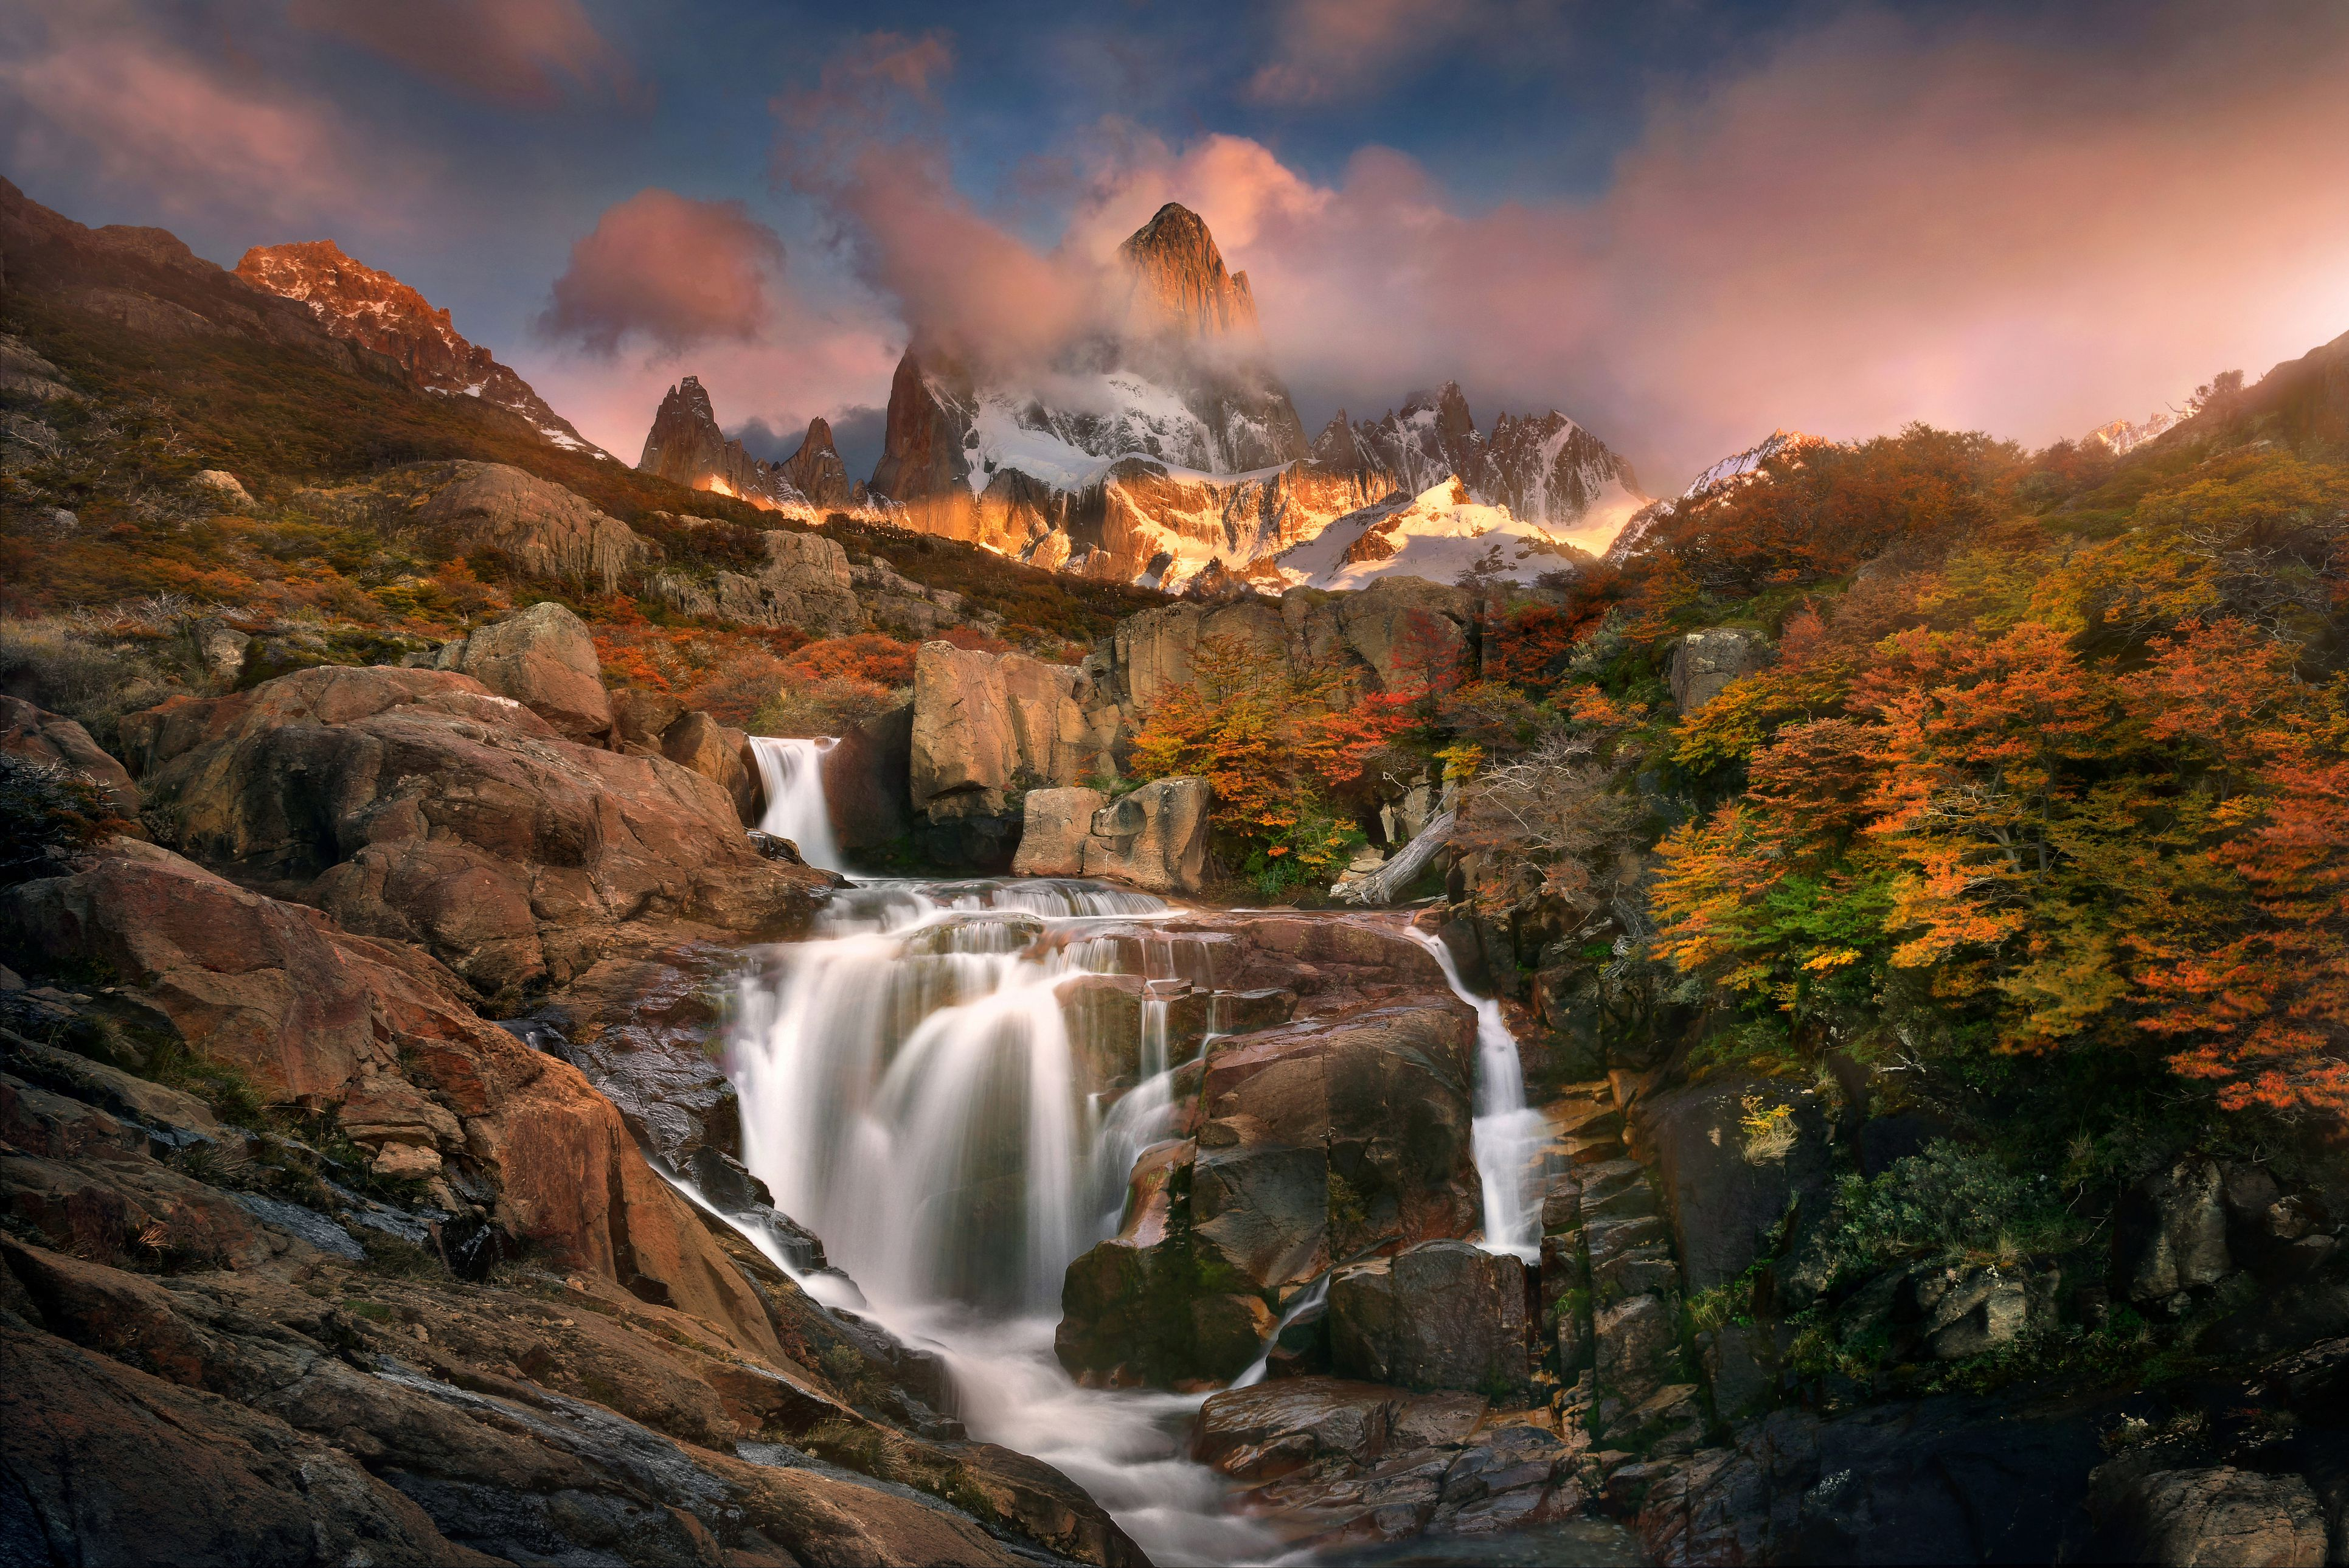 patagonia travel argentina lonely planet - HD1196×796